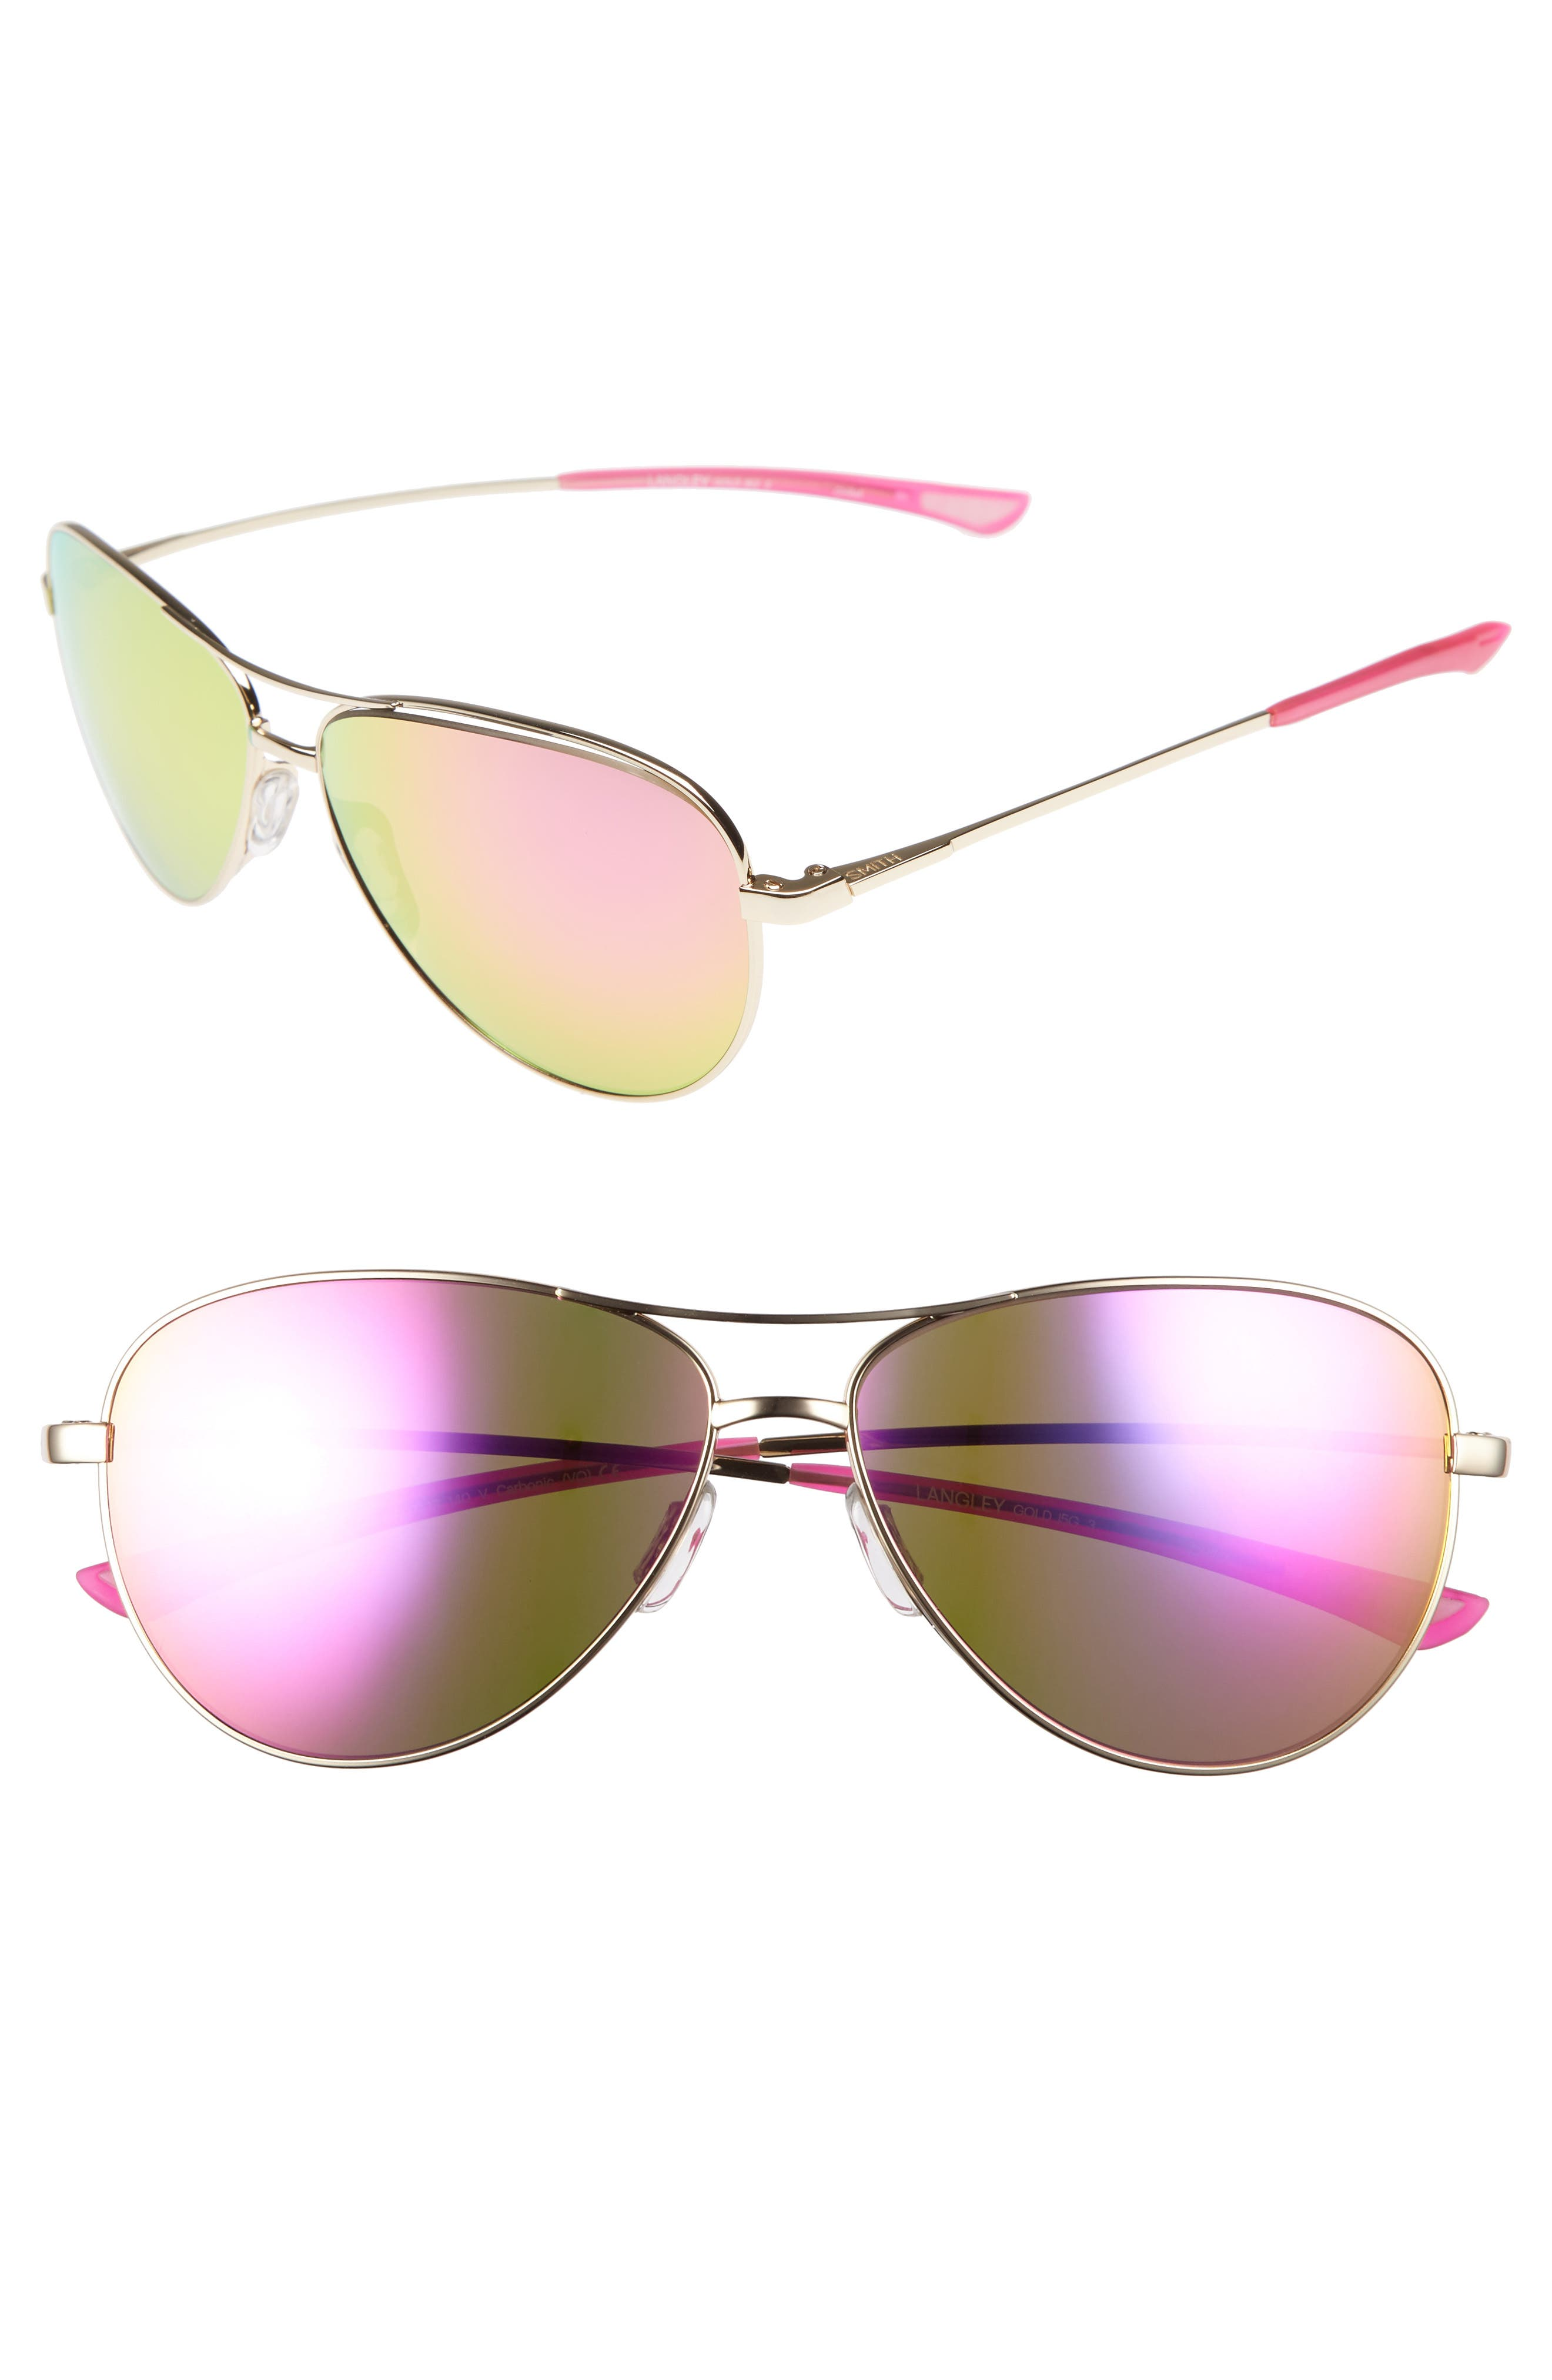 'LANGLEY' 60MM AVIATOR SUNGLASSES - GOLD/ PINK